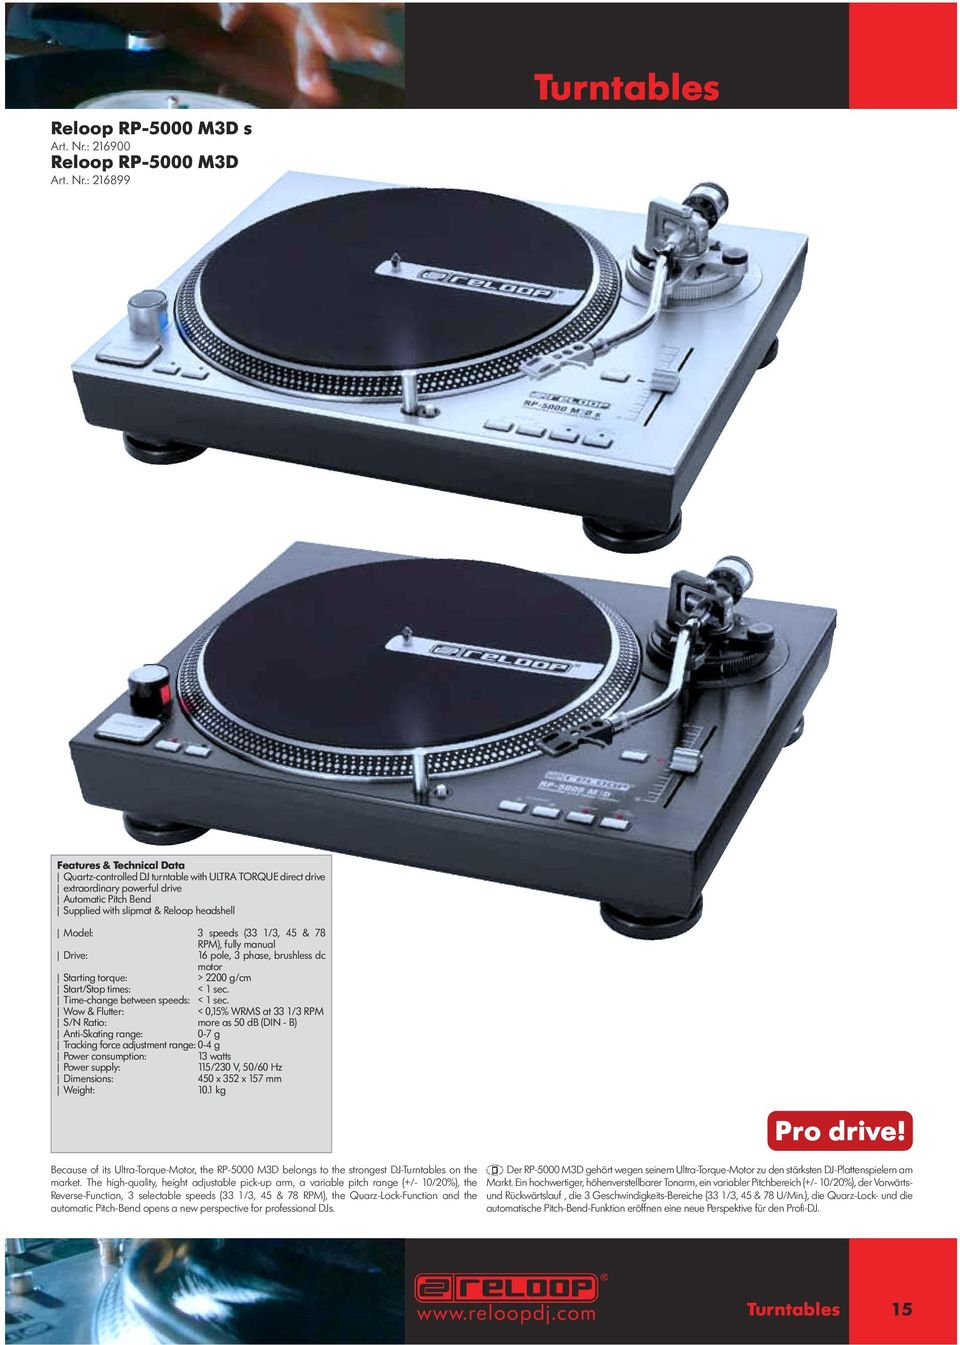 : 216899 Turntables Quartz-controlled DJ turntable with ULTRA TORQUE direct drive extraordinary powerful drive Automatic Pitch Bend Supplied with slipmat & Reloop headshell Model: 3 speeds (33 1/3,